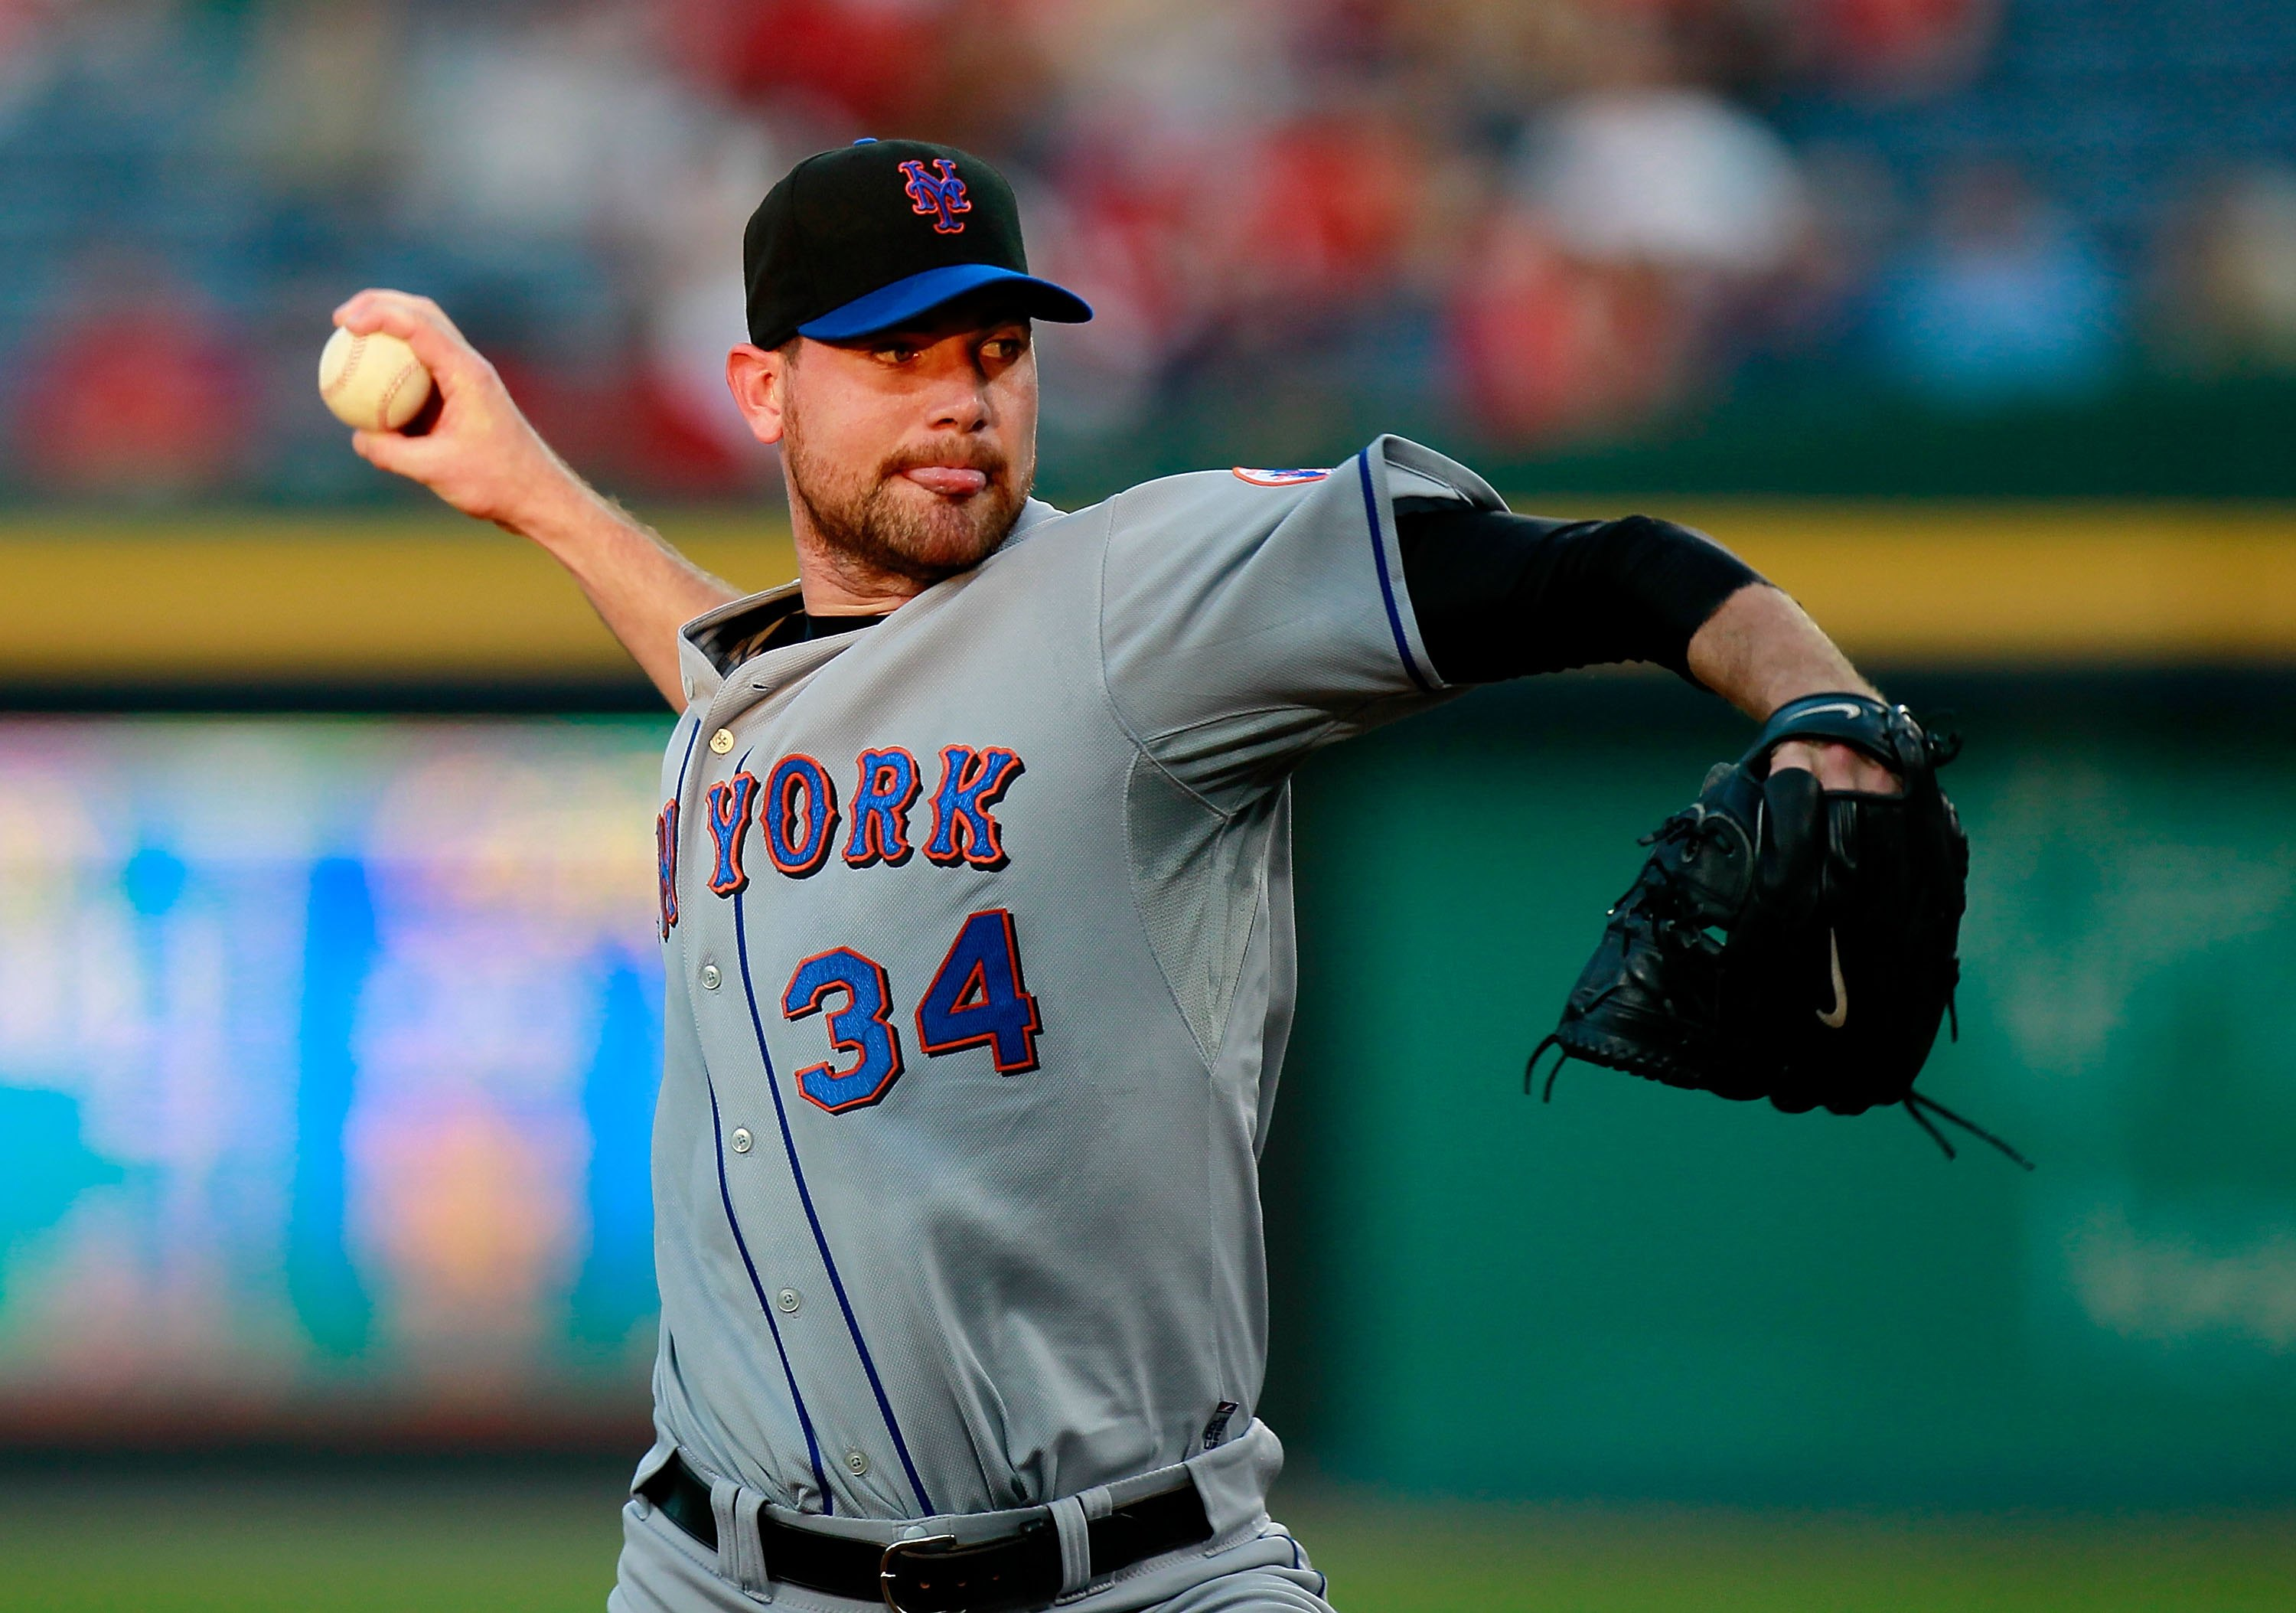 Can the Mets afford to lock up their young pitching stud Mike Pelfrey?